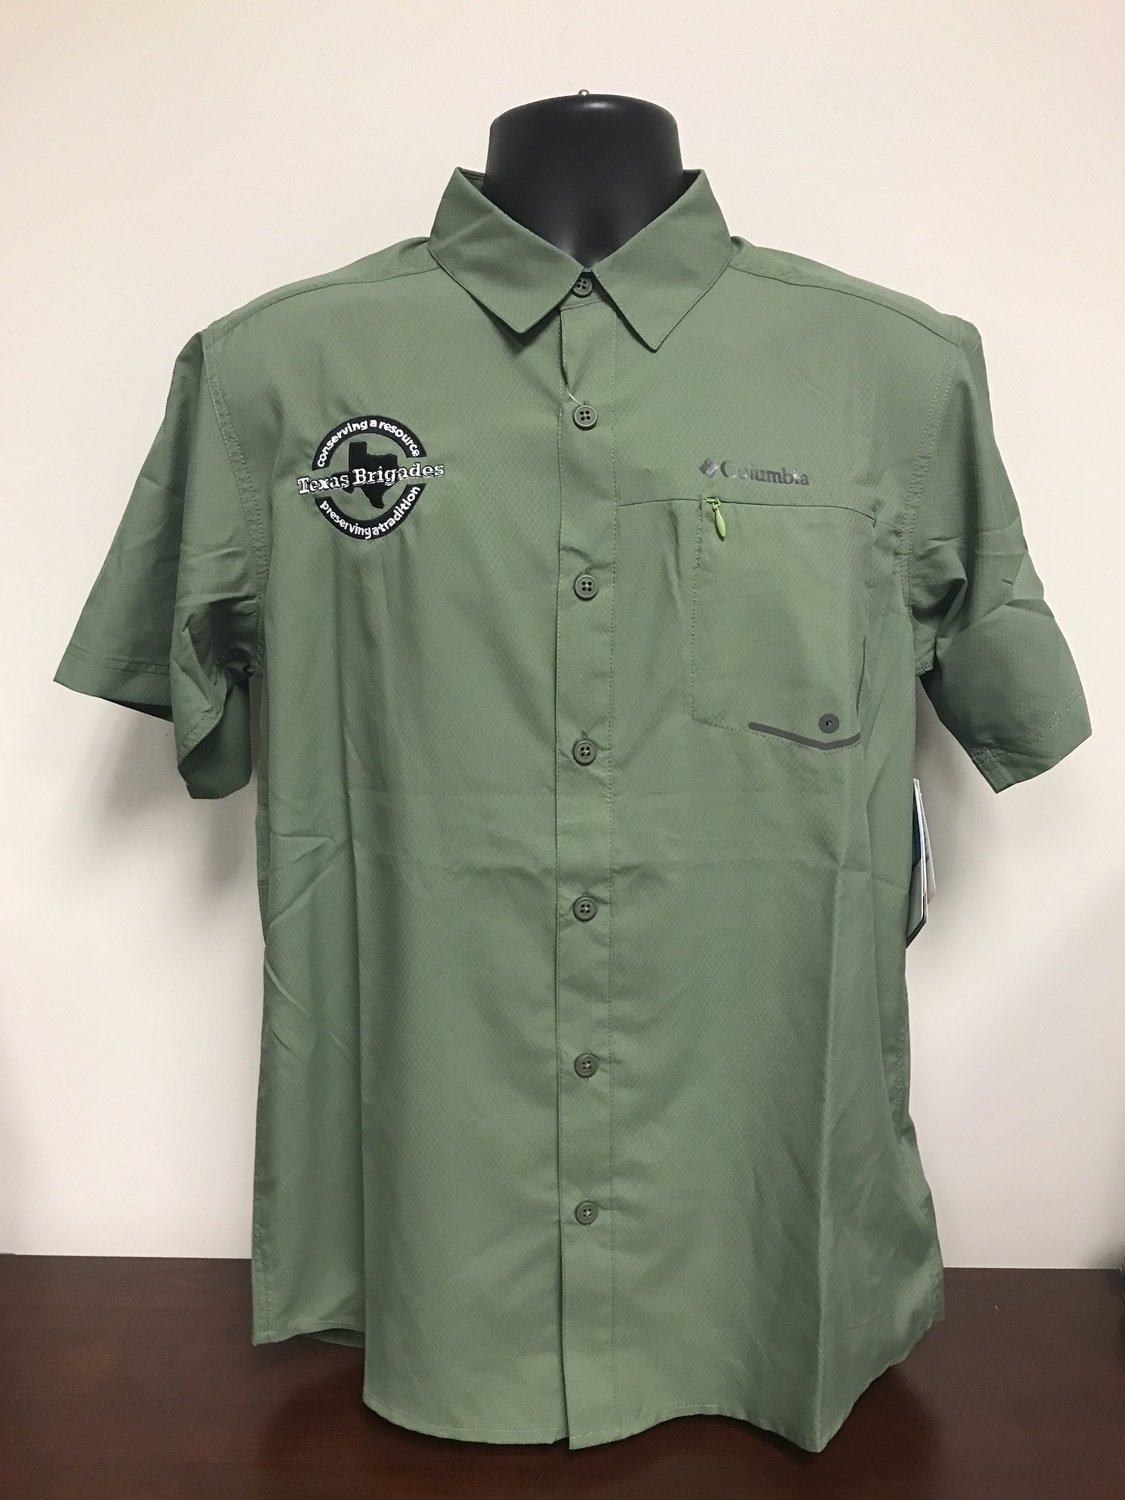 Men's Columbia Short Sleeve Shirt (X-LARGE)